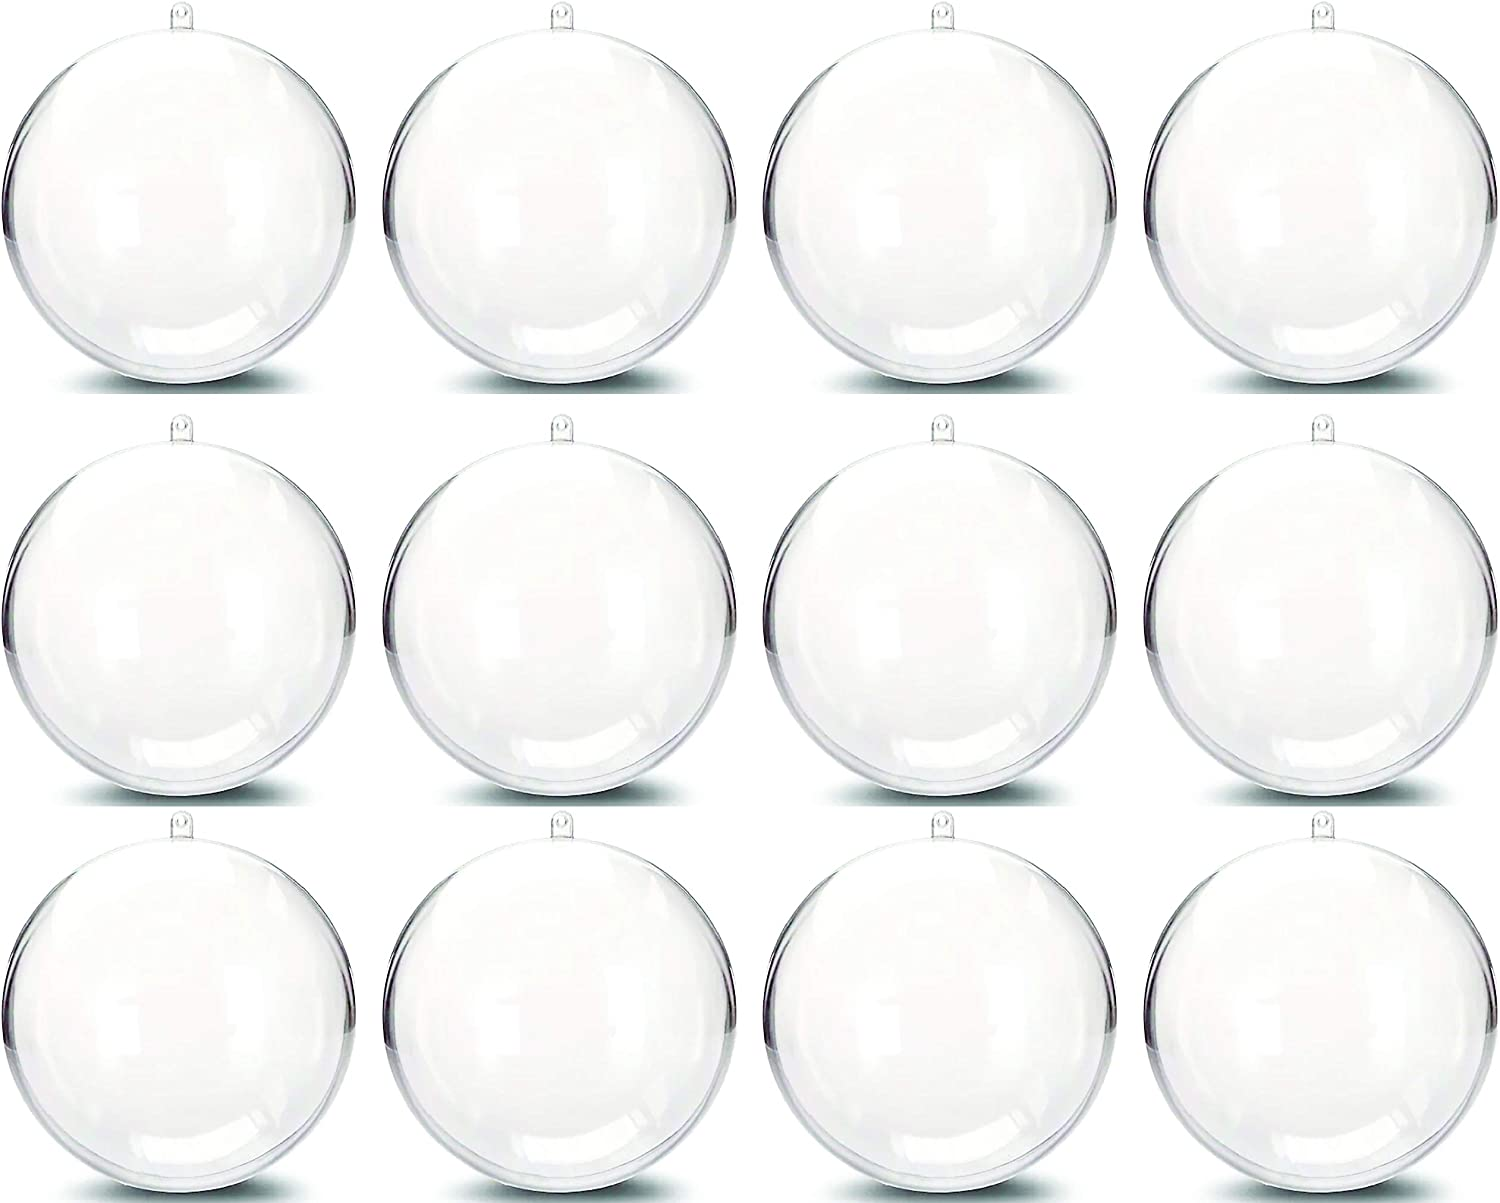 Plastic Ball Ornament, 80mm, Clear, Pack of 12 (80 mm) (80mm)